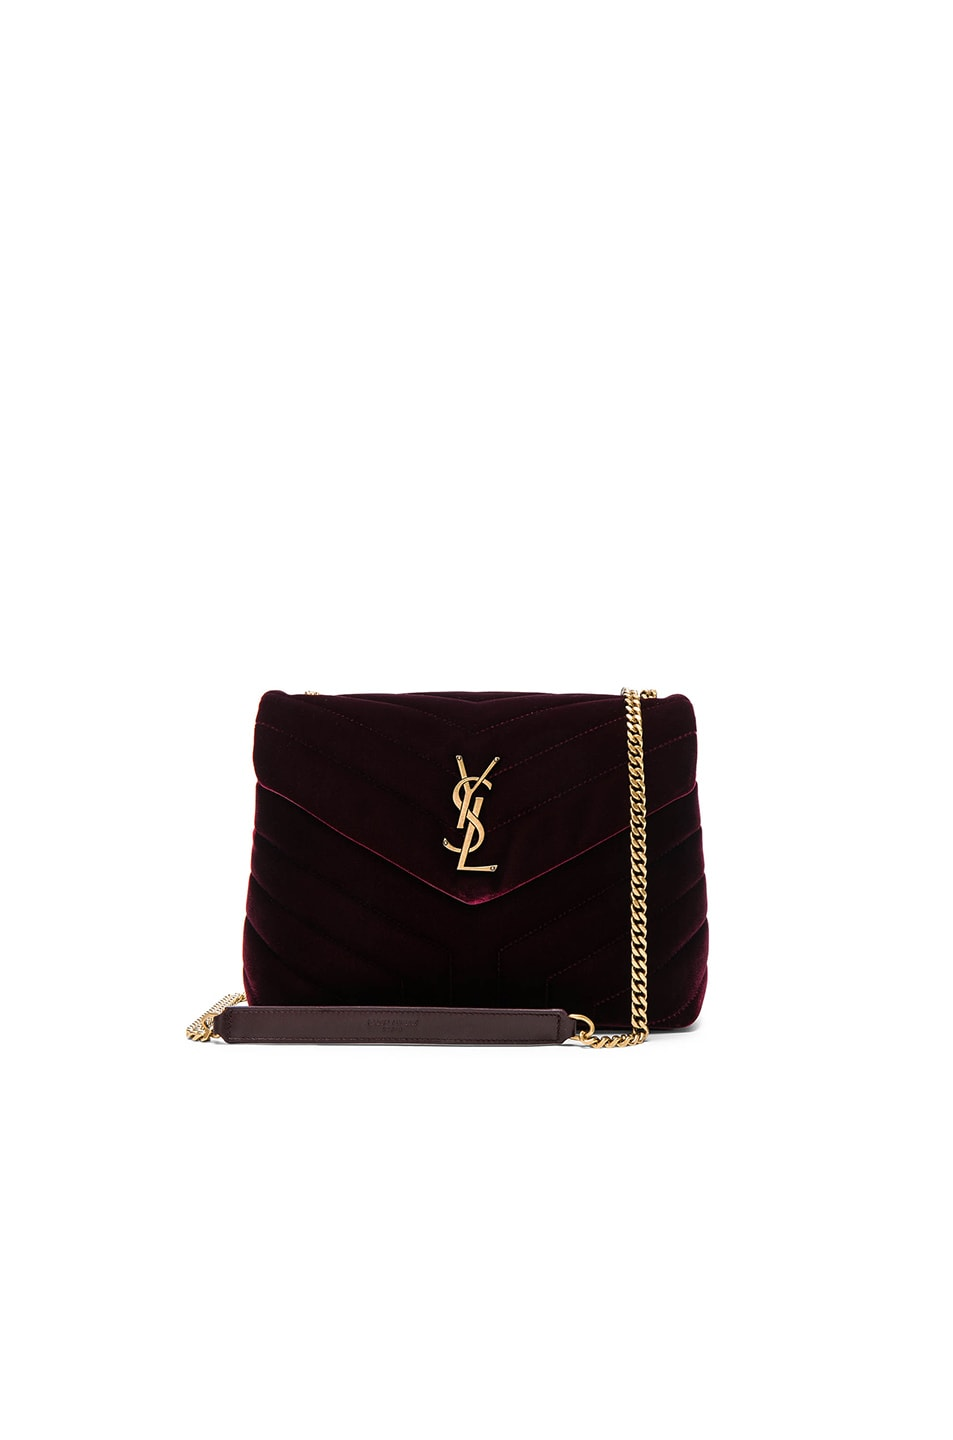 Image 1 of Saint Laurent Small Velvet Monogramme Loulou Chain Bag in French Burgundy